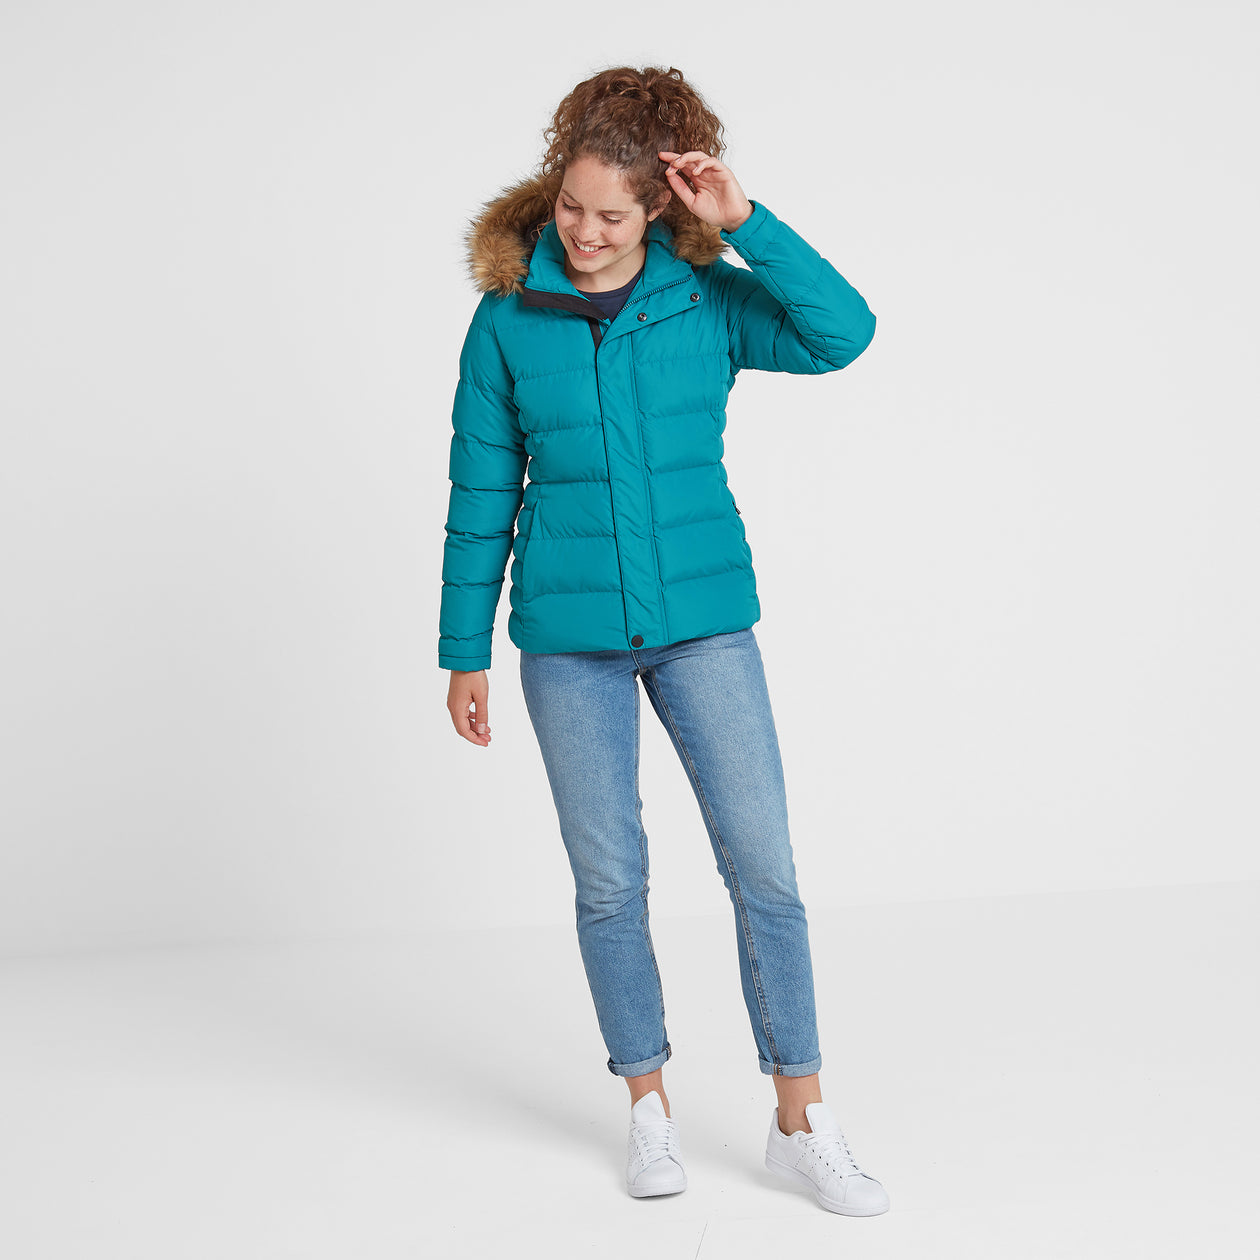 Fernsby Womens Insulated Jacket - Topaz image 4